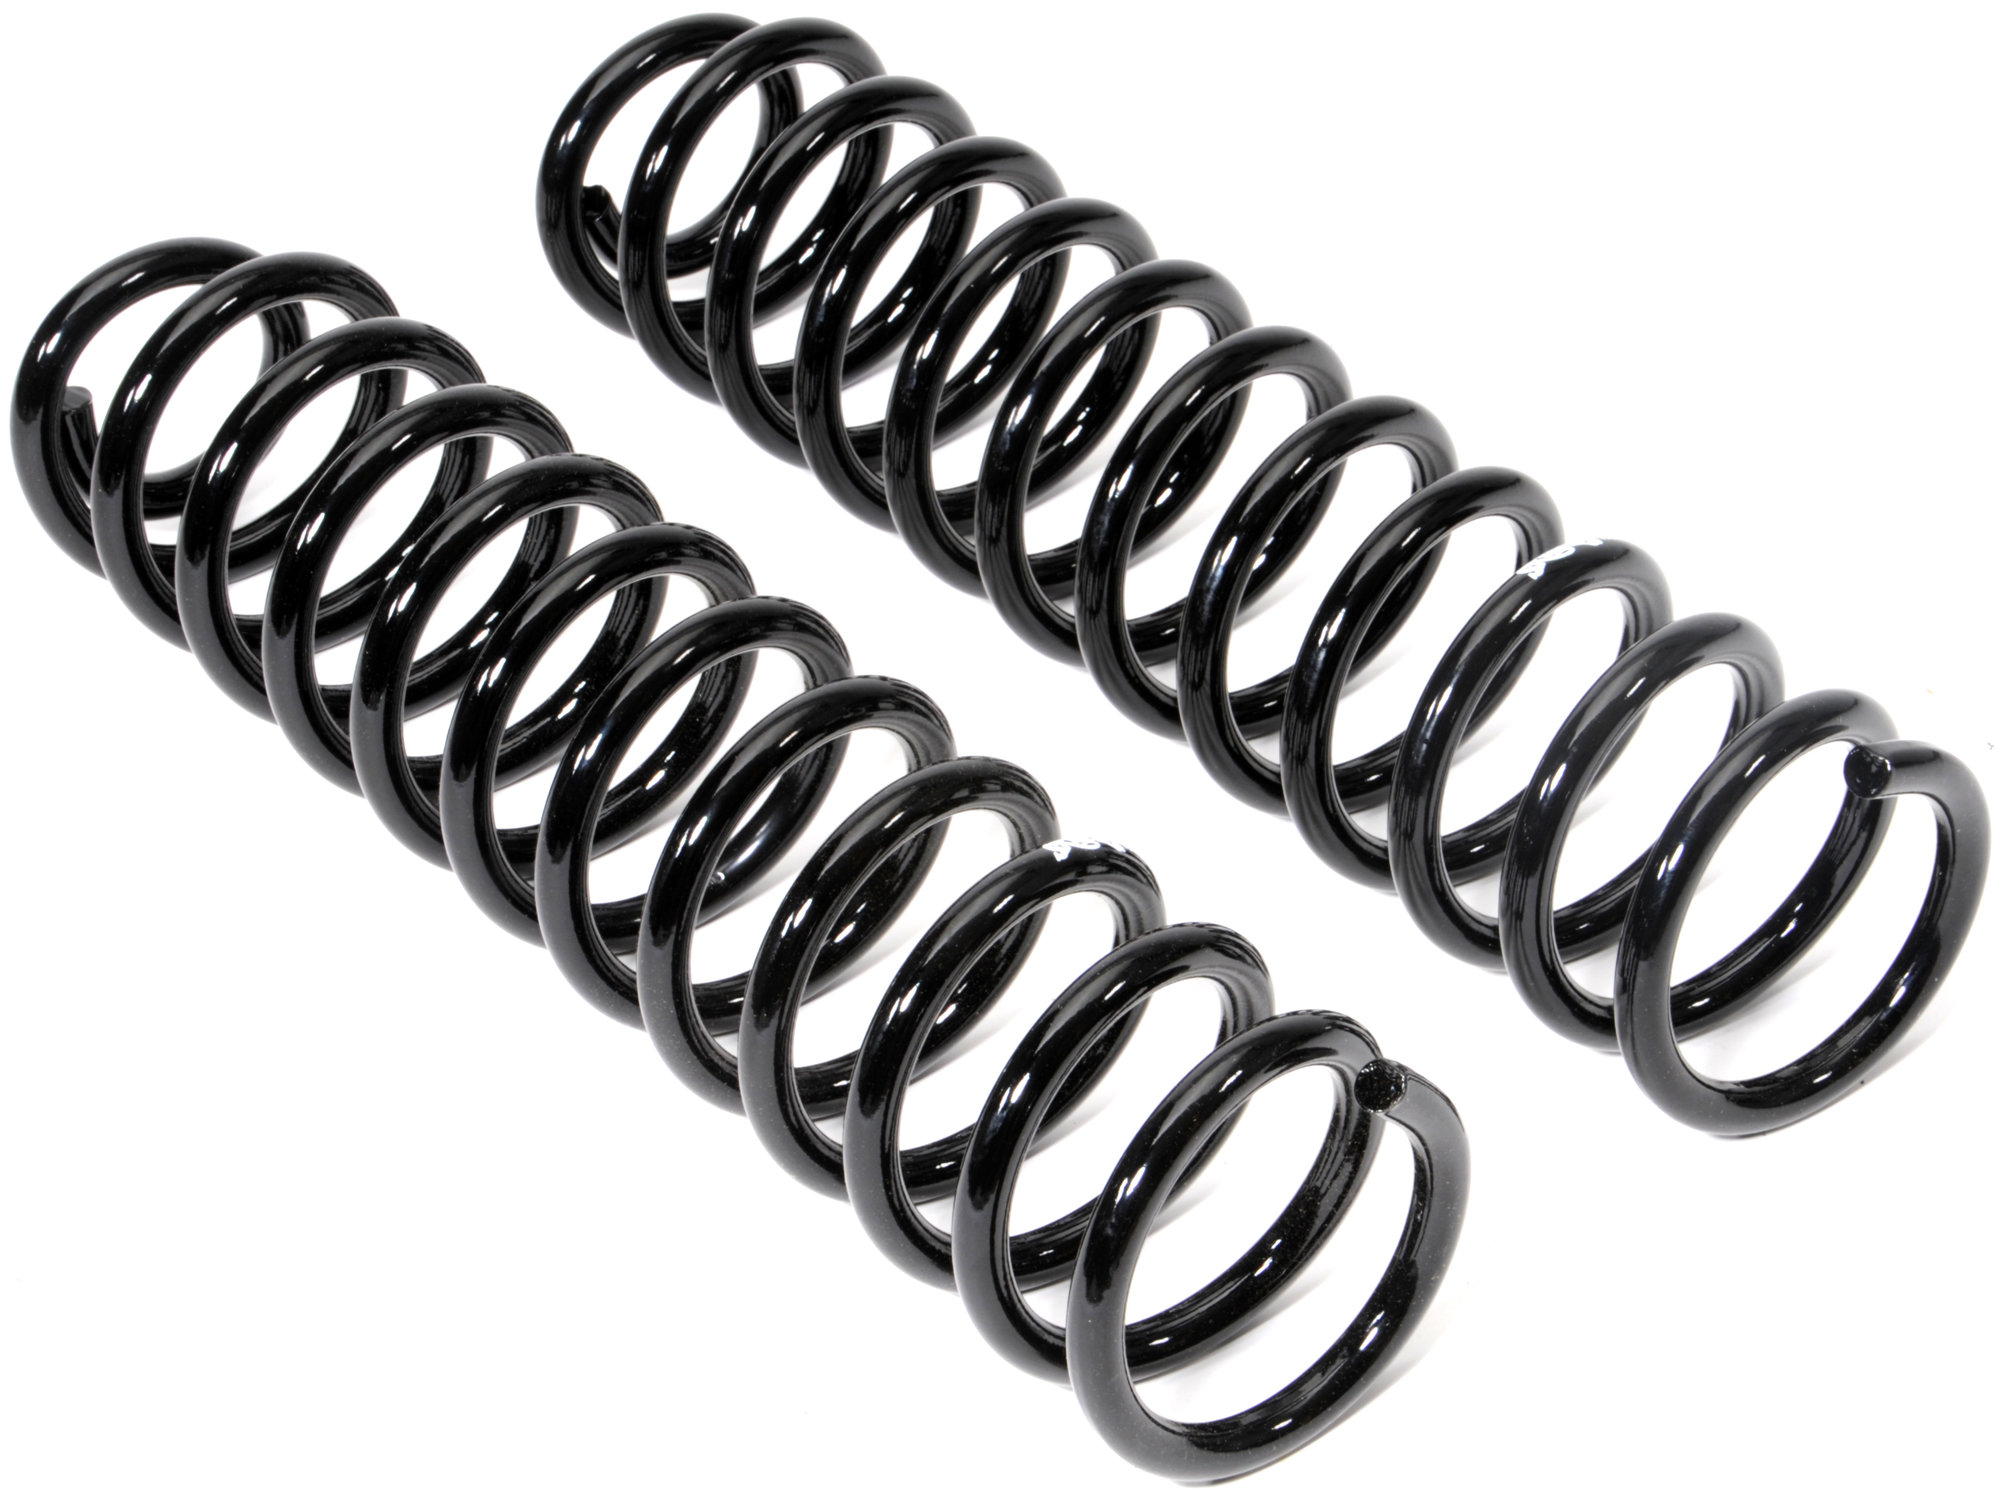 Skyjacker TJ60F Softride Front Coil Springs for 97-06 Jeep